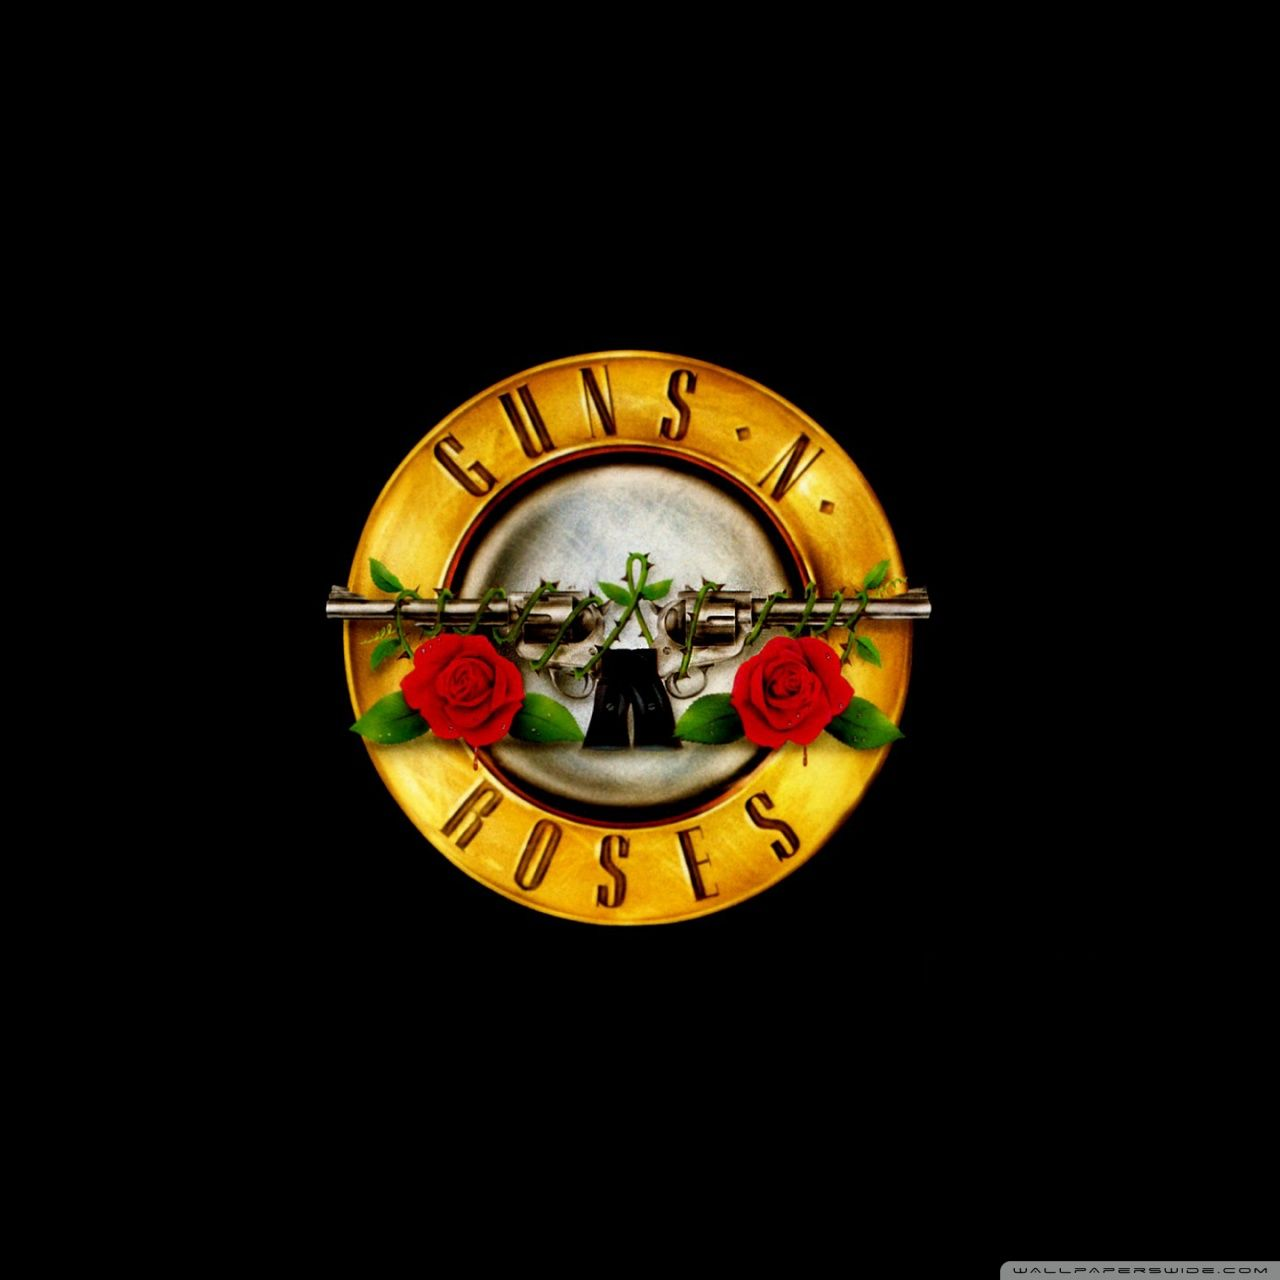 Fotos n roses slash iphone hd wallpaper - Download Free Guns N Roses Wallpapers For Your Mobile Phone By